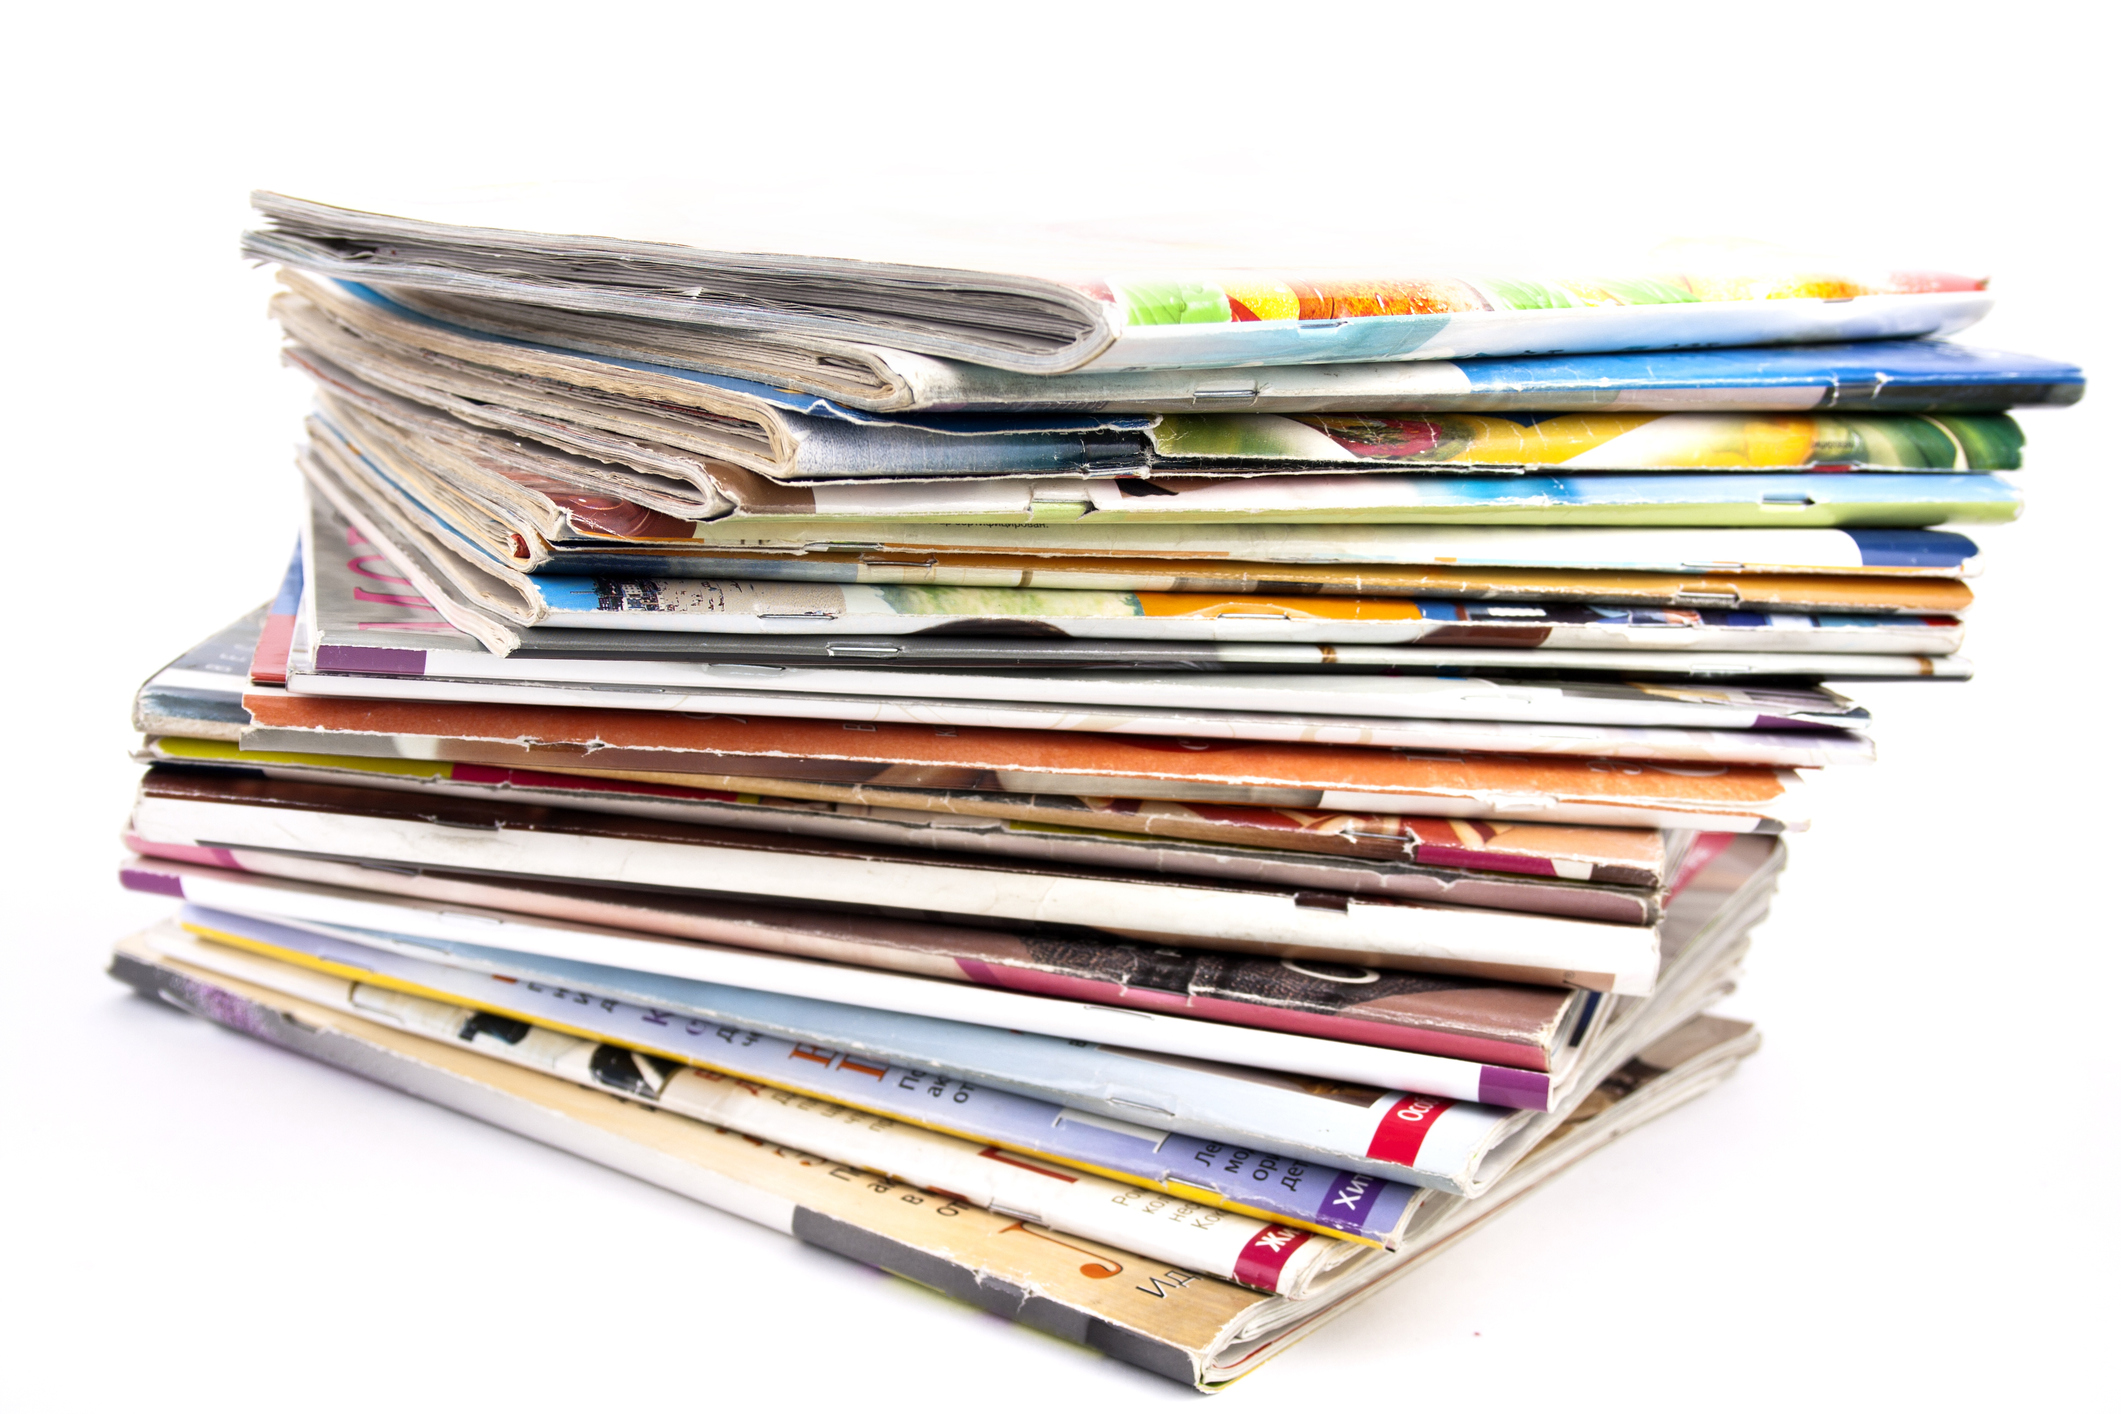 Use the slick paper feel as a guideline. NO mixed paper or books. Magazines and newspaper go in the same bin.